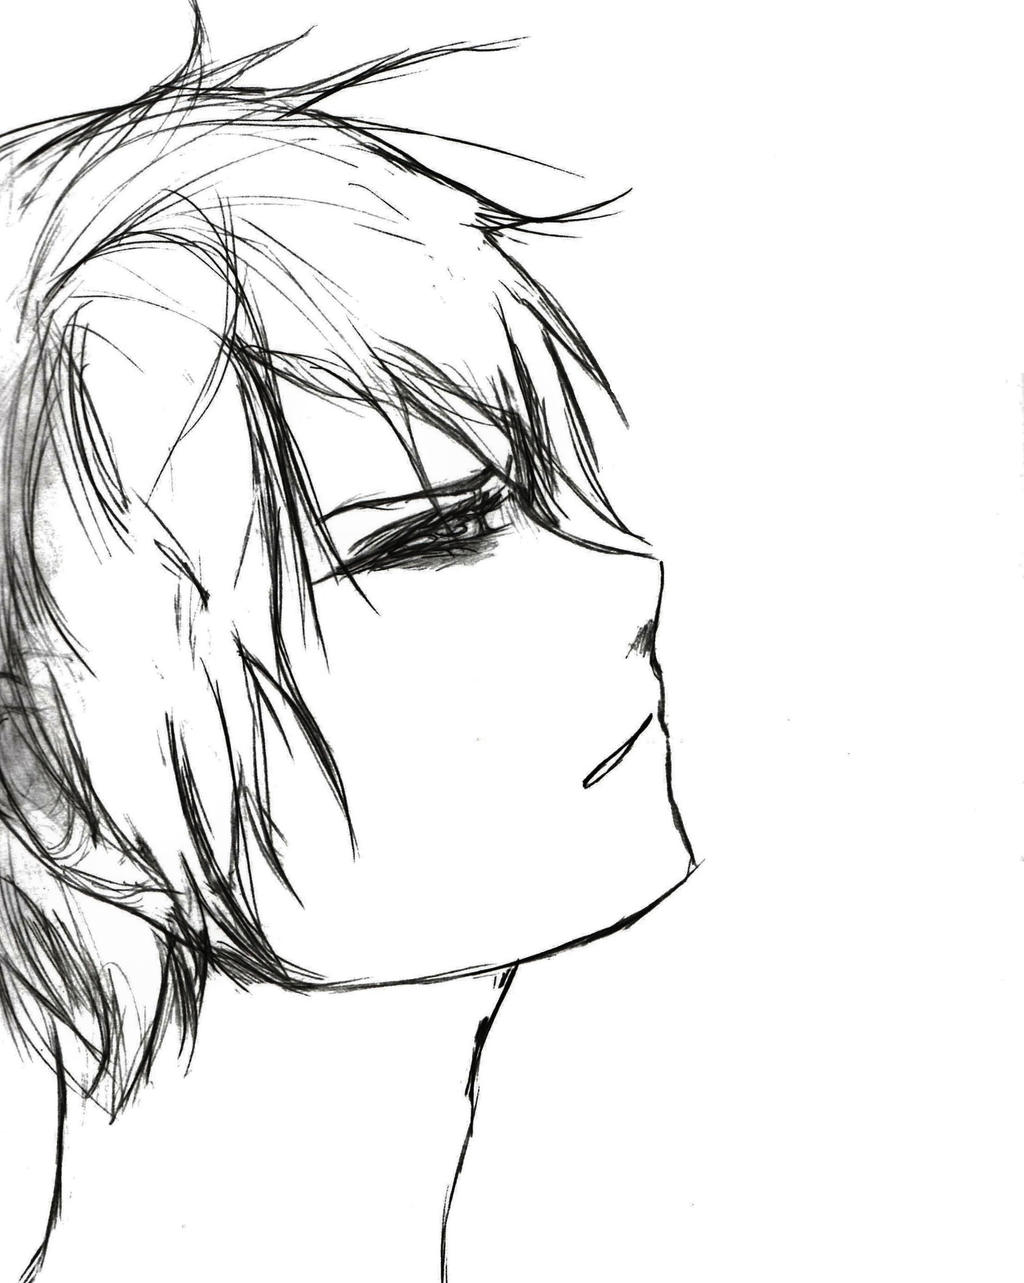 Anime Eye Tutorial By Haley101 Side Profile Drawing? By 9mumei19